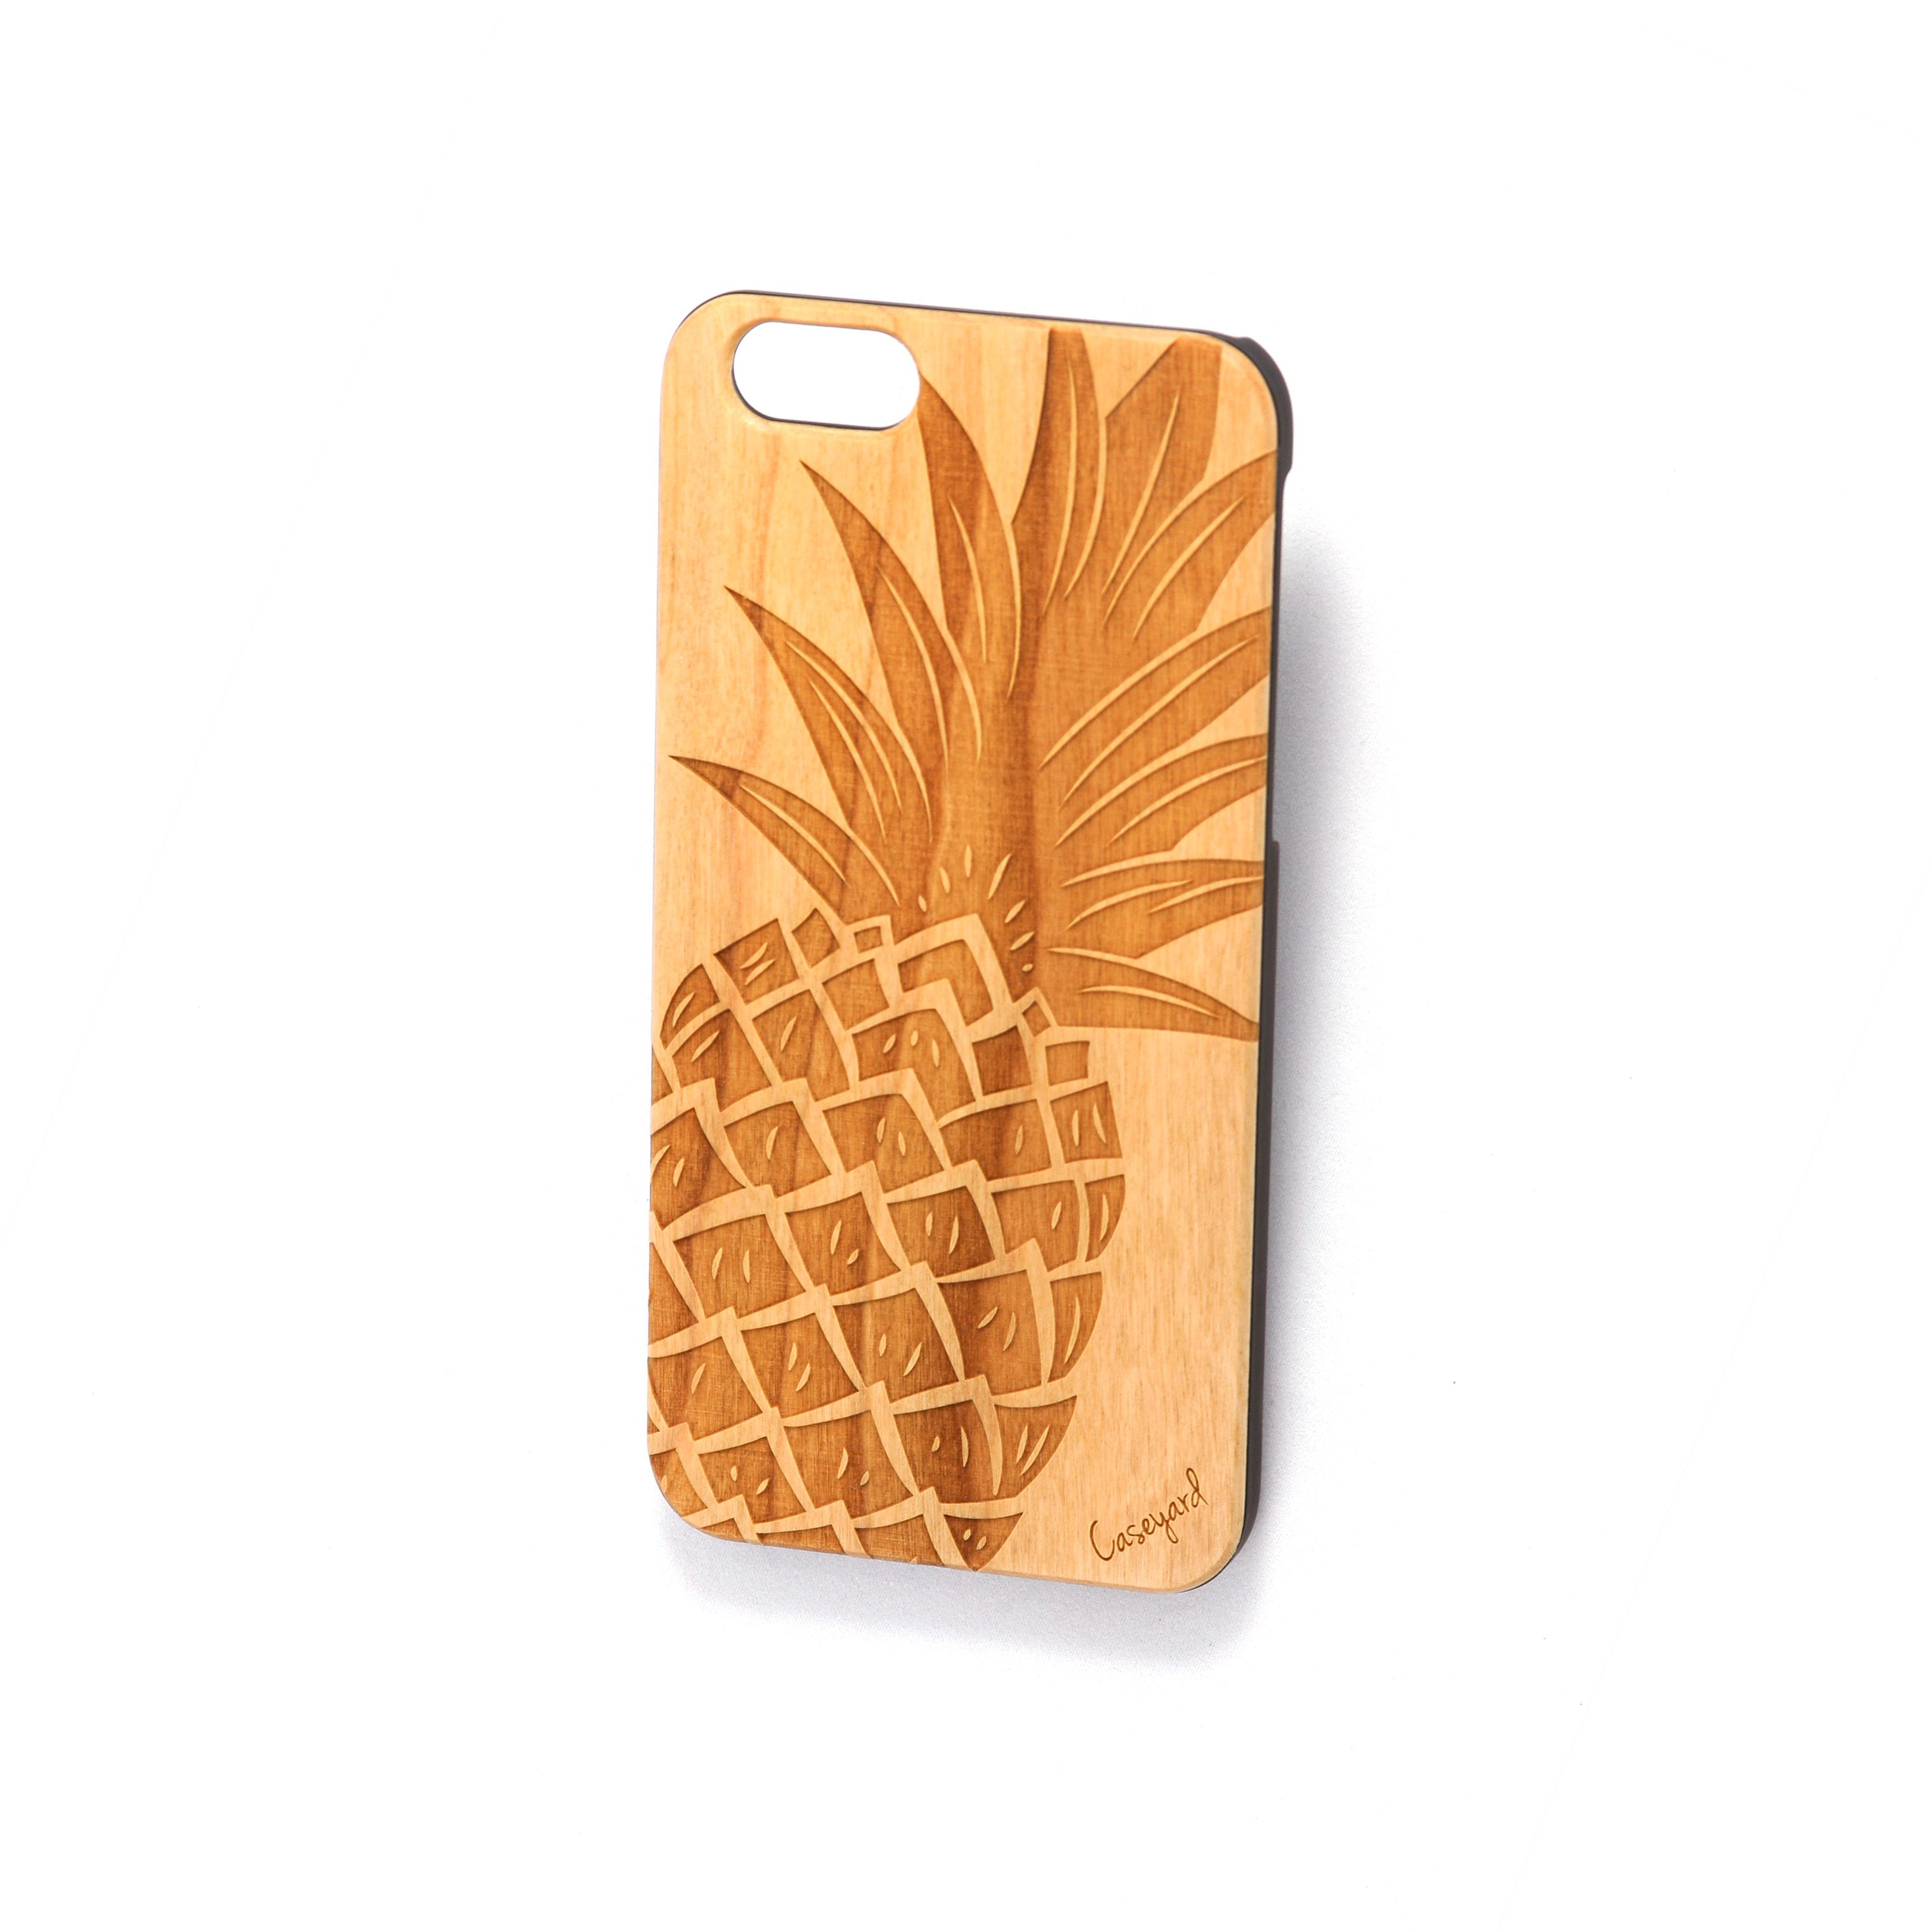 Wooden pineapple iphone case iphone 6 case iphone 5 case iphone cases wood case iphone case